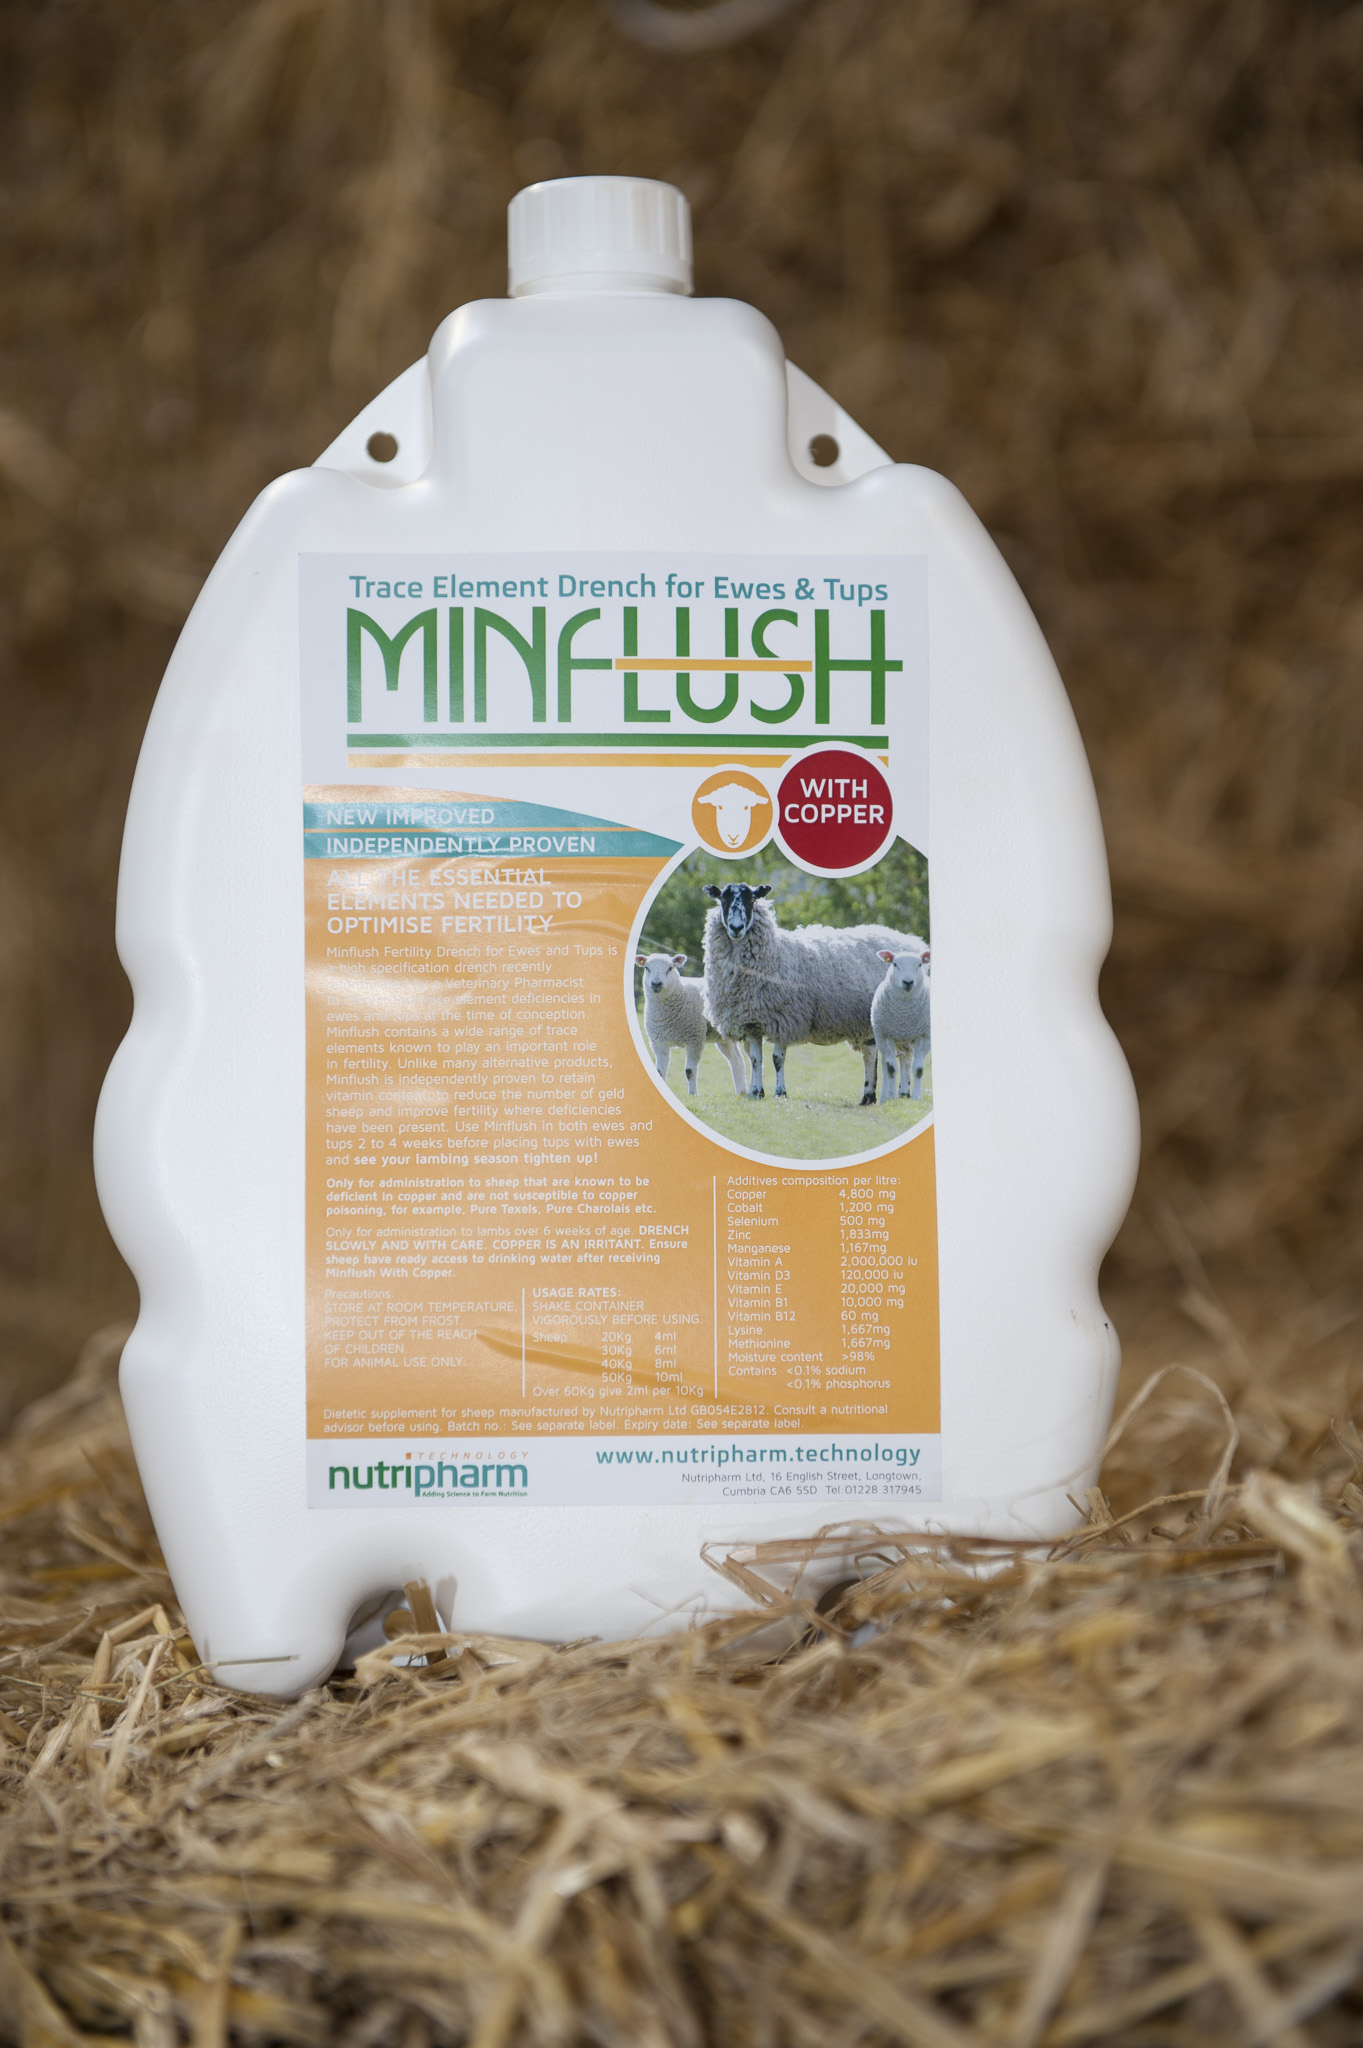 Minflush - With Copper